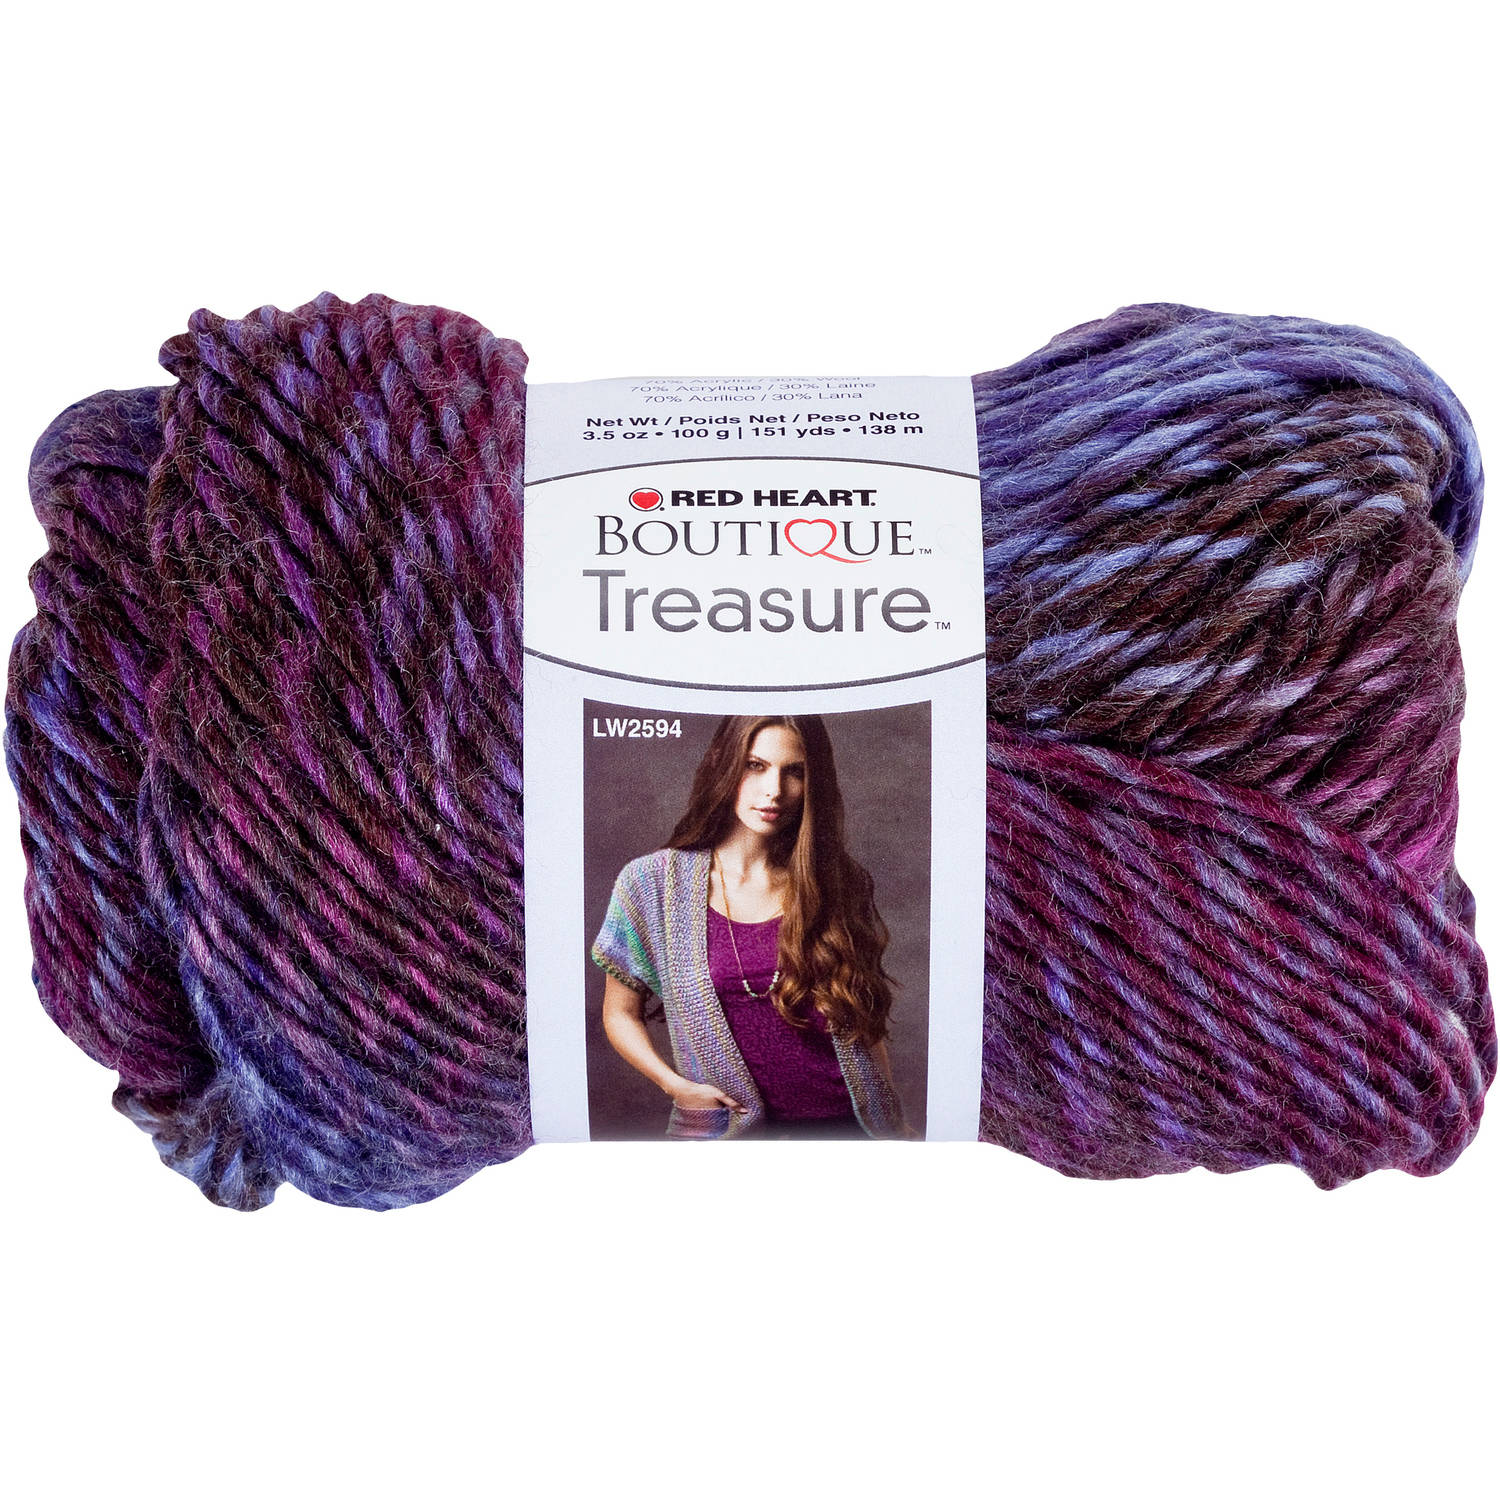 Red Heart Boutique Treasure Yarn, Available in Multiple Colors